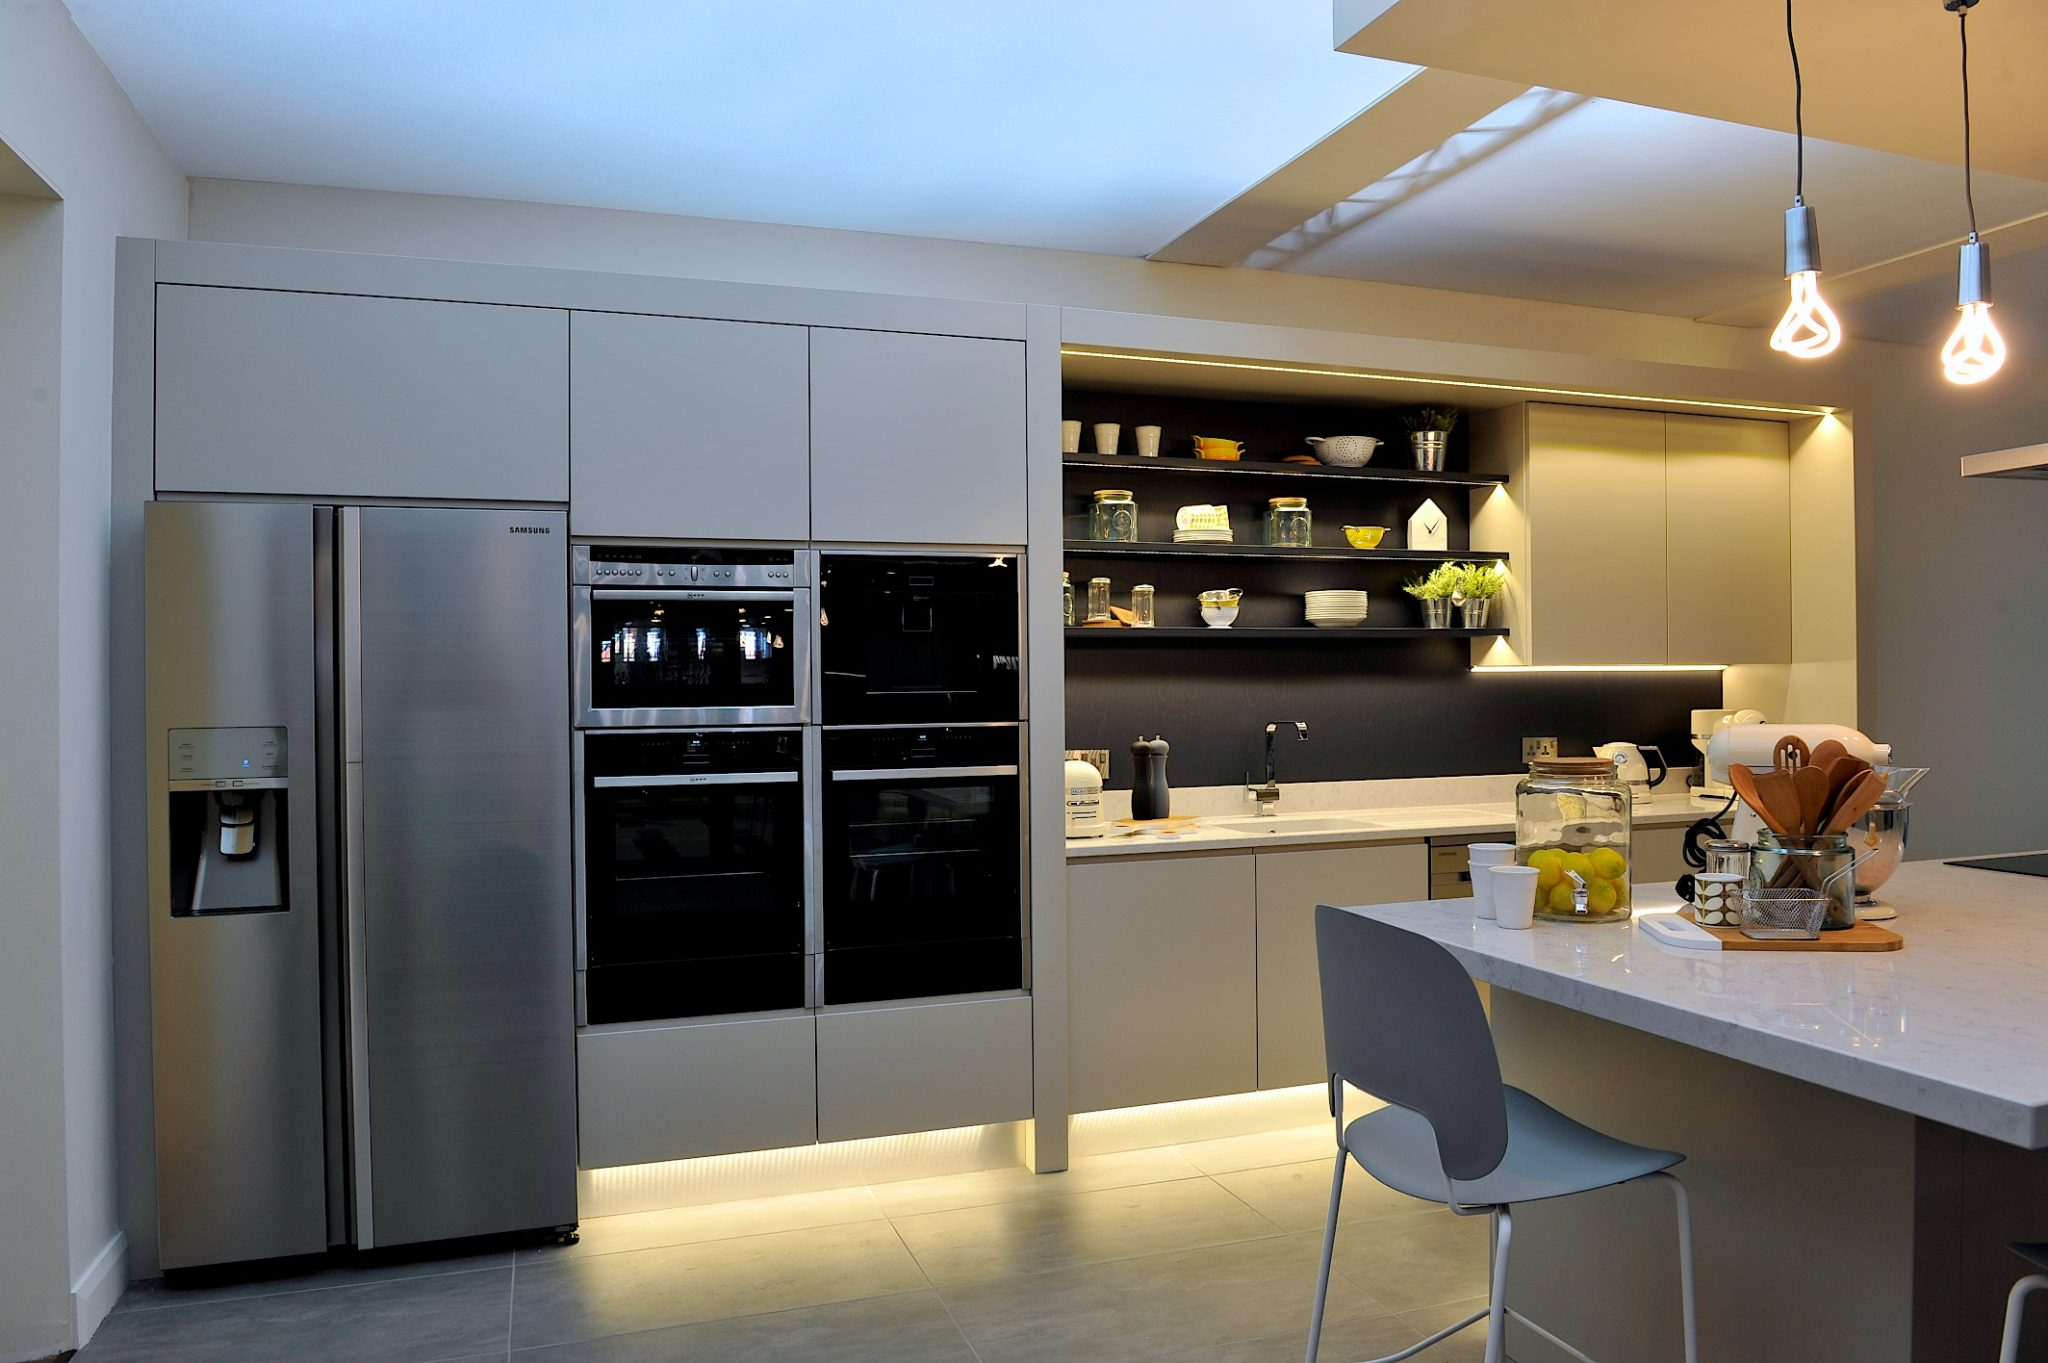 Enigma design ideal home show house kitchen enigma design 3 - Show picture of kitchen ...